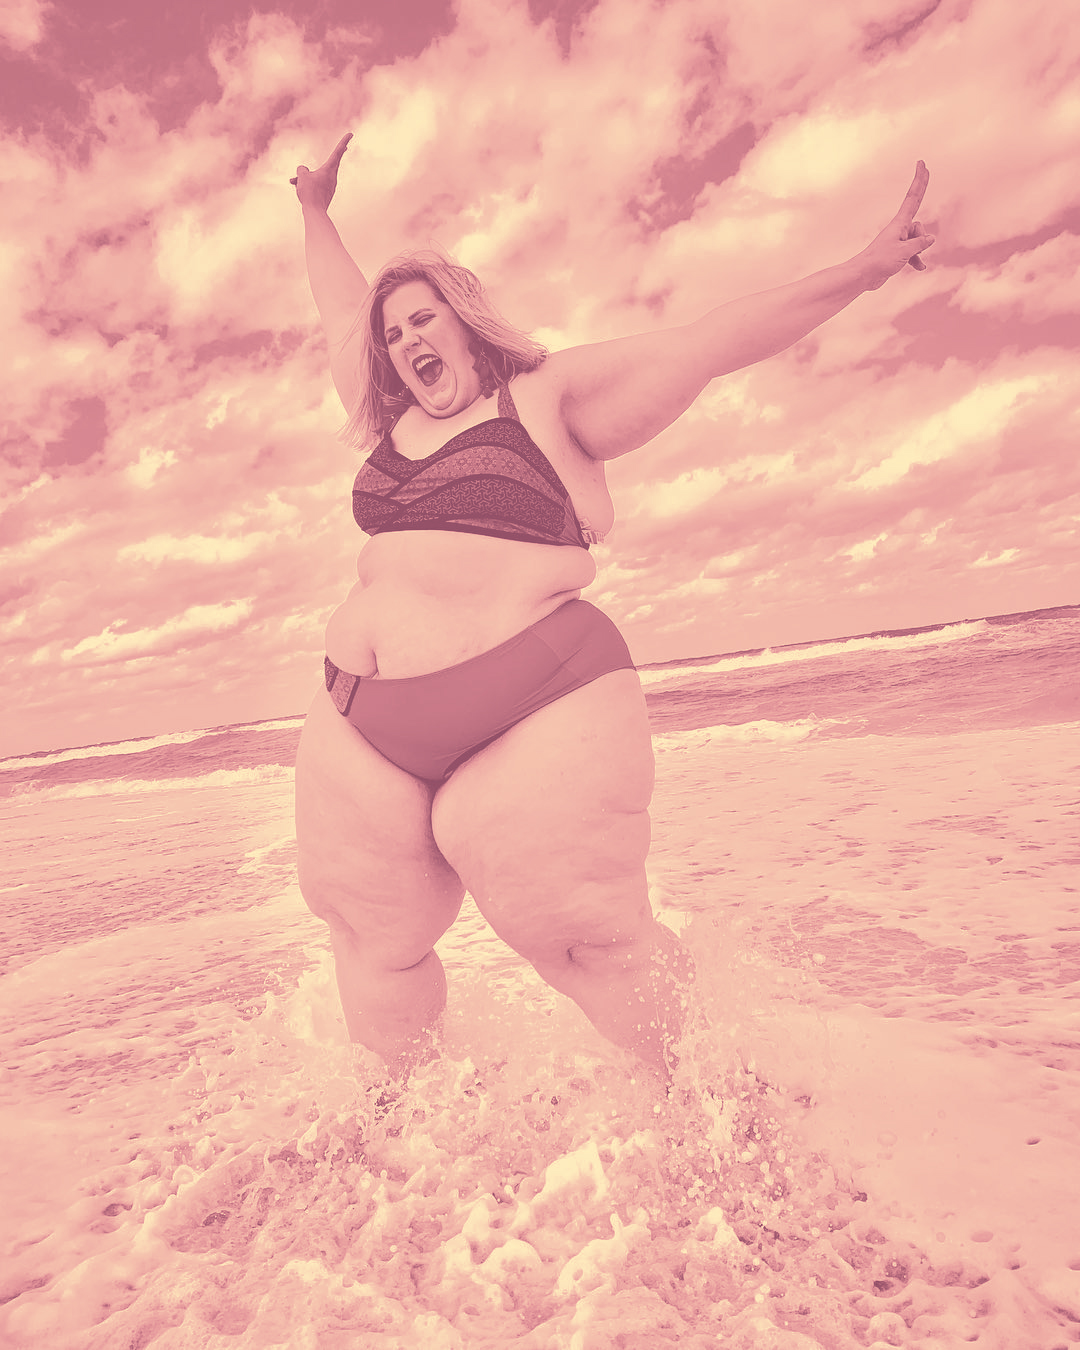 This Plus-Sized Model's Bikini Pic Is Sparking Controversy on Twitter